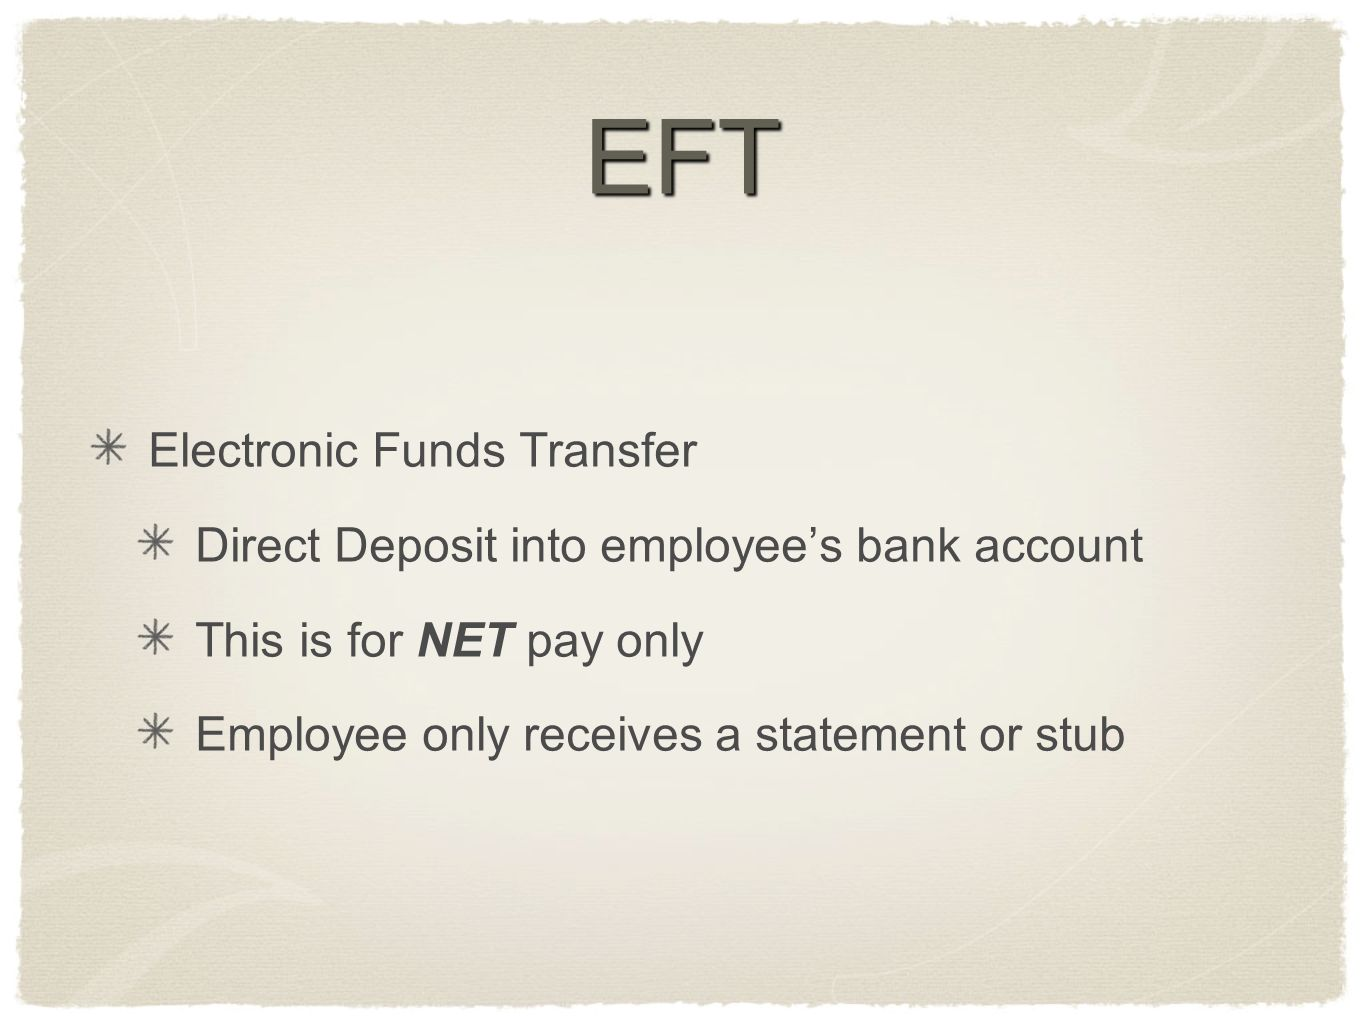 EFT Electronic Funds Transfer